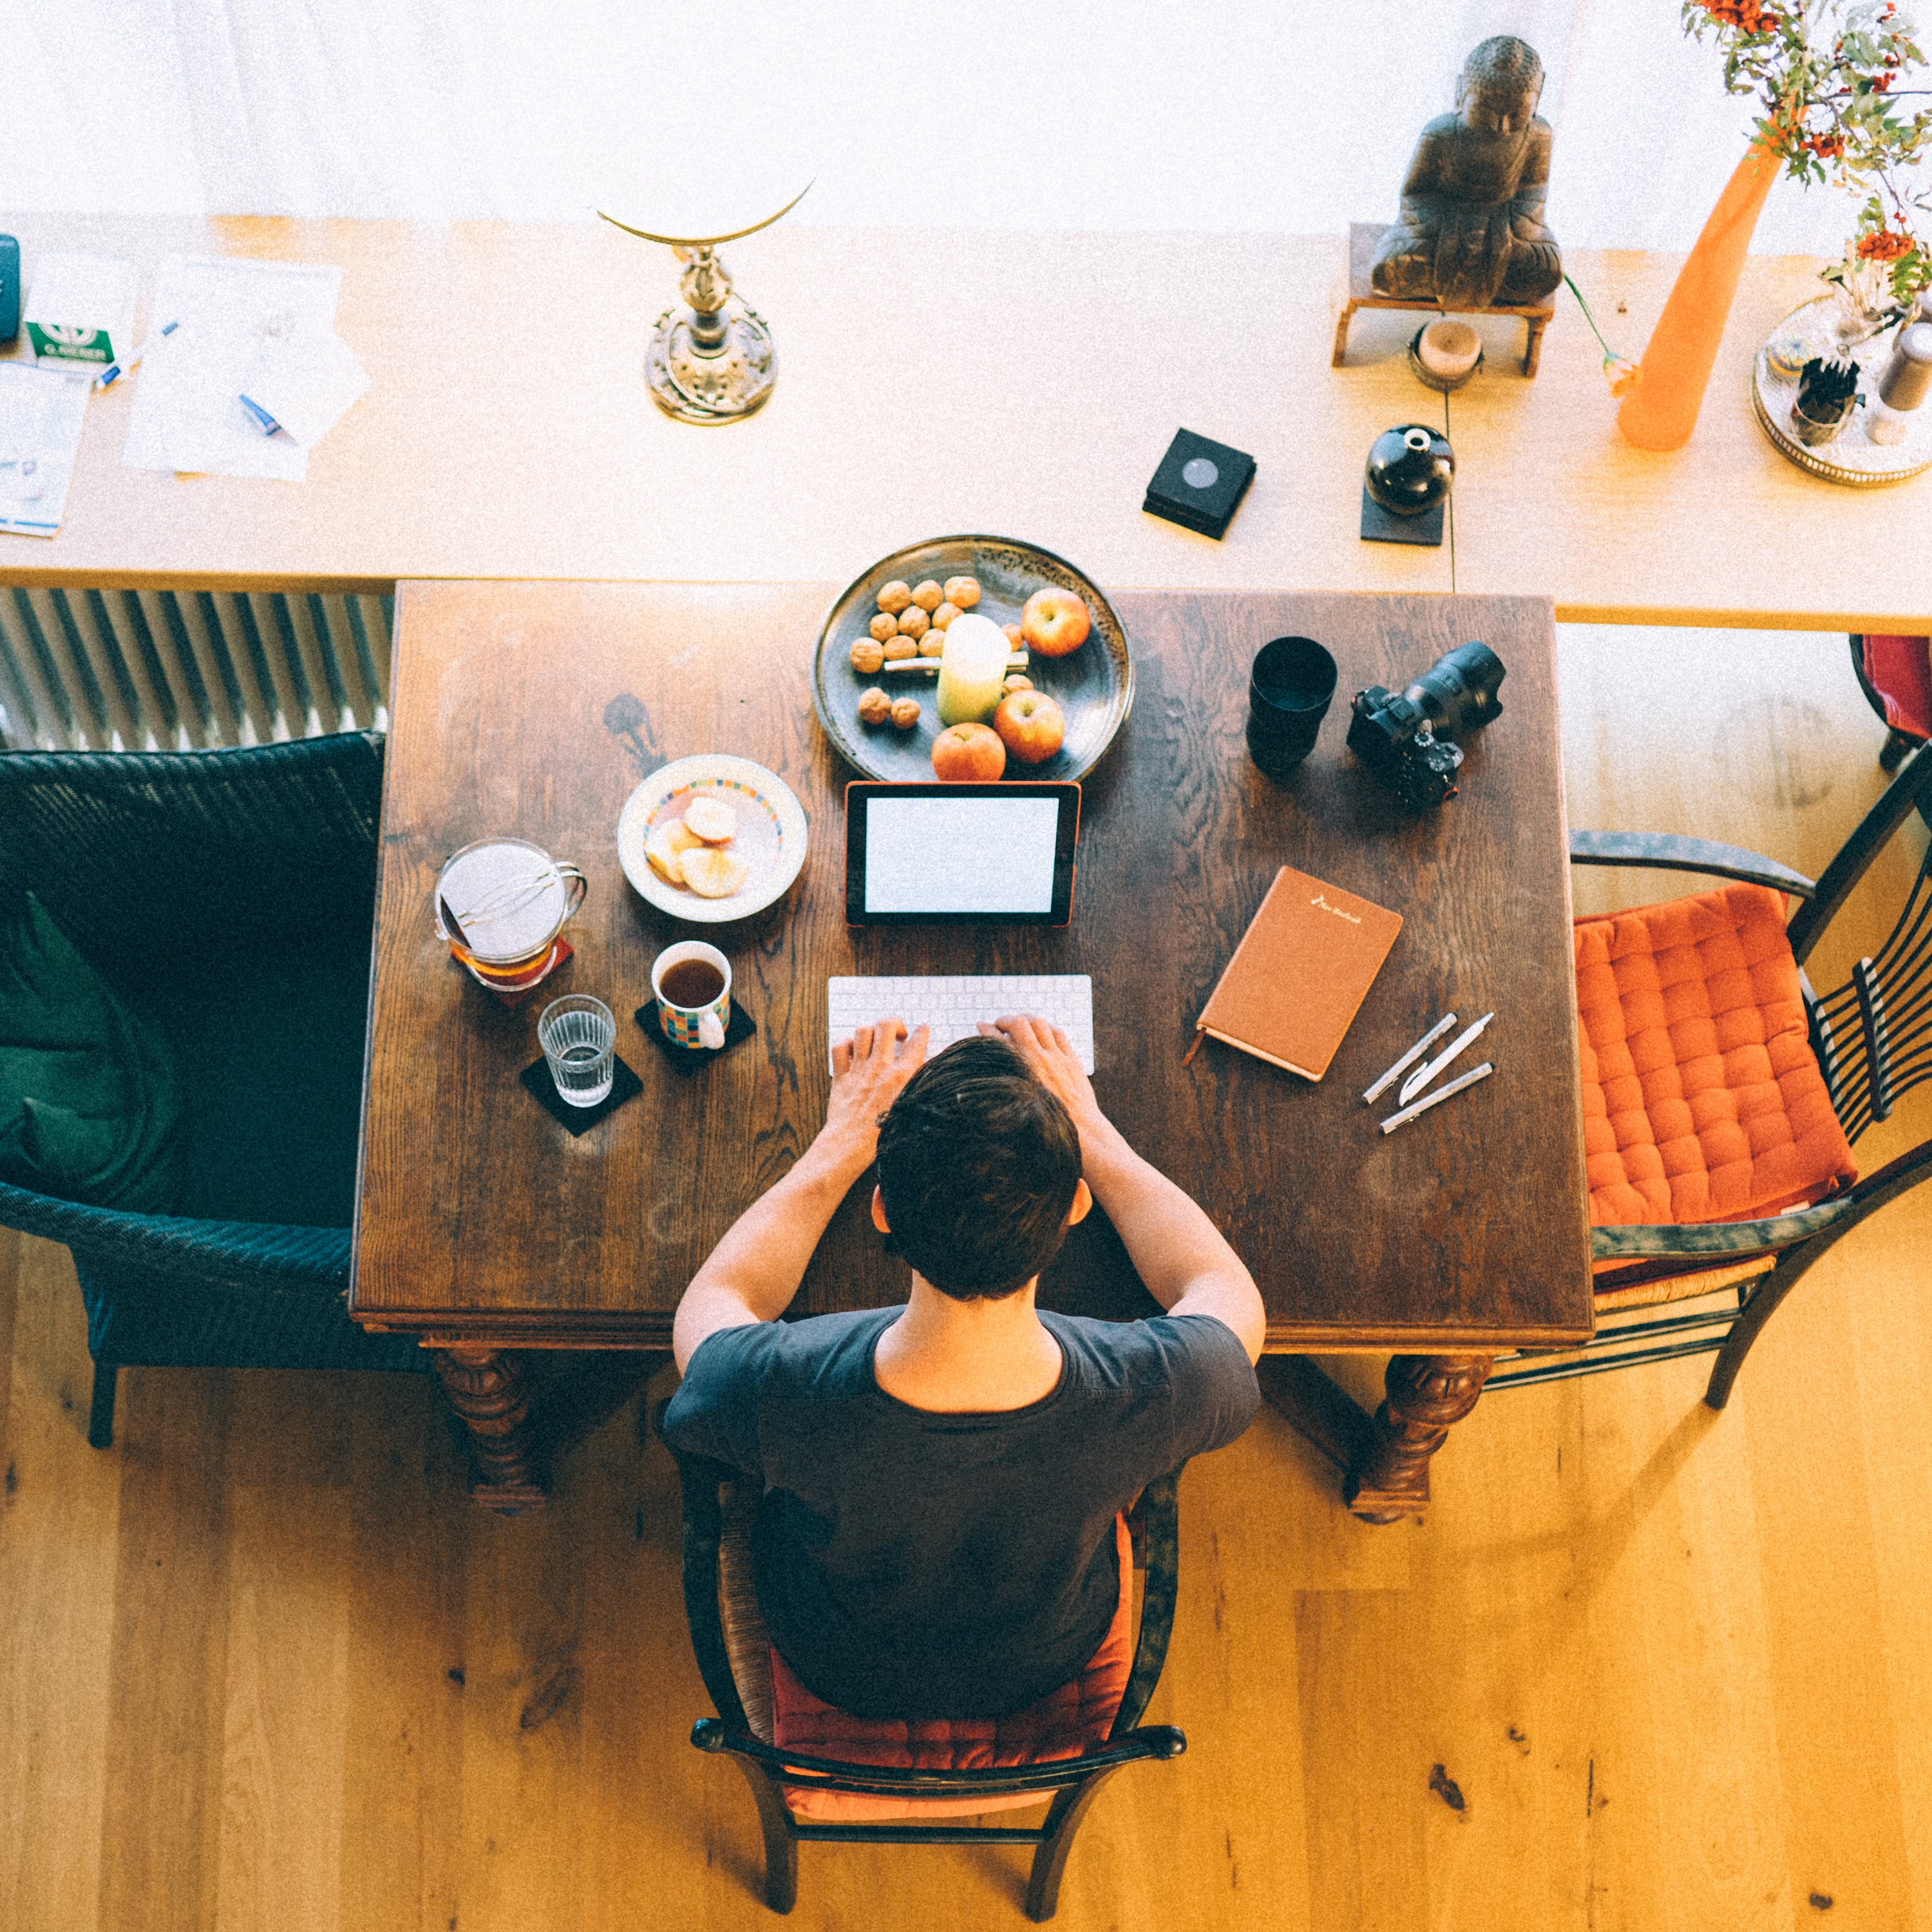 How to work remotely, stay focused and motivated